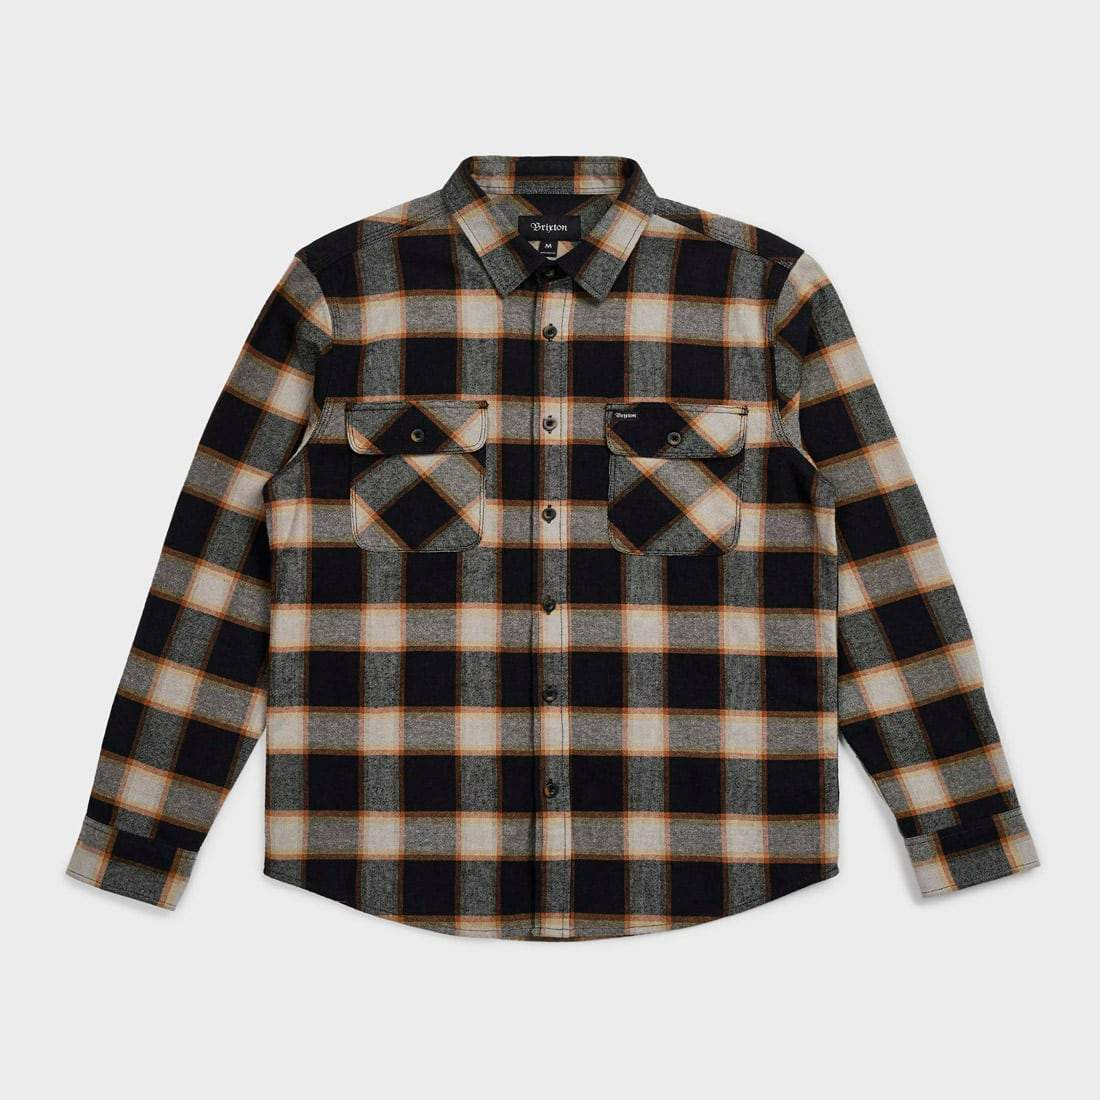 Brixton Bowery Flannel Plaid Black/Cream